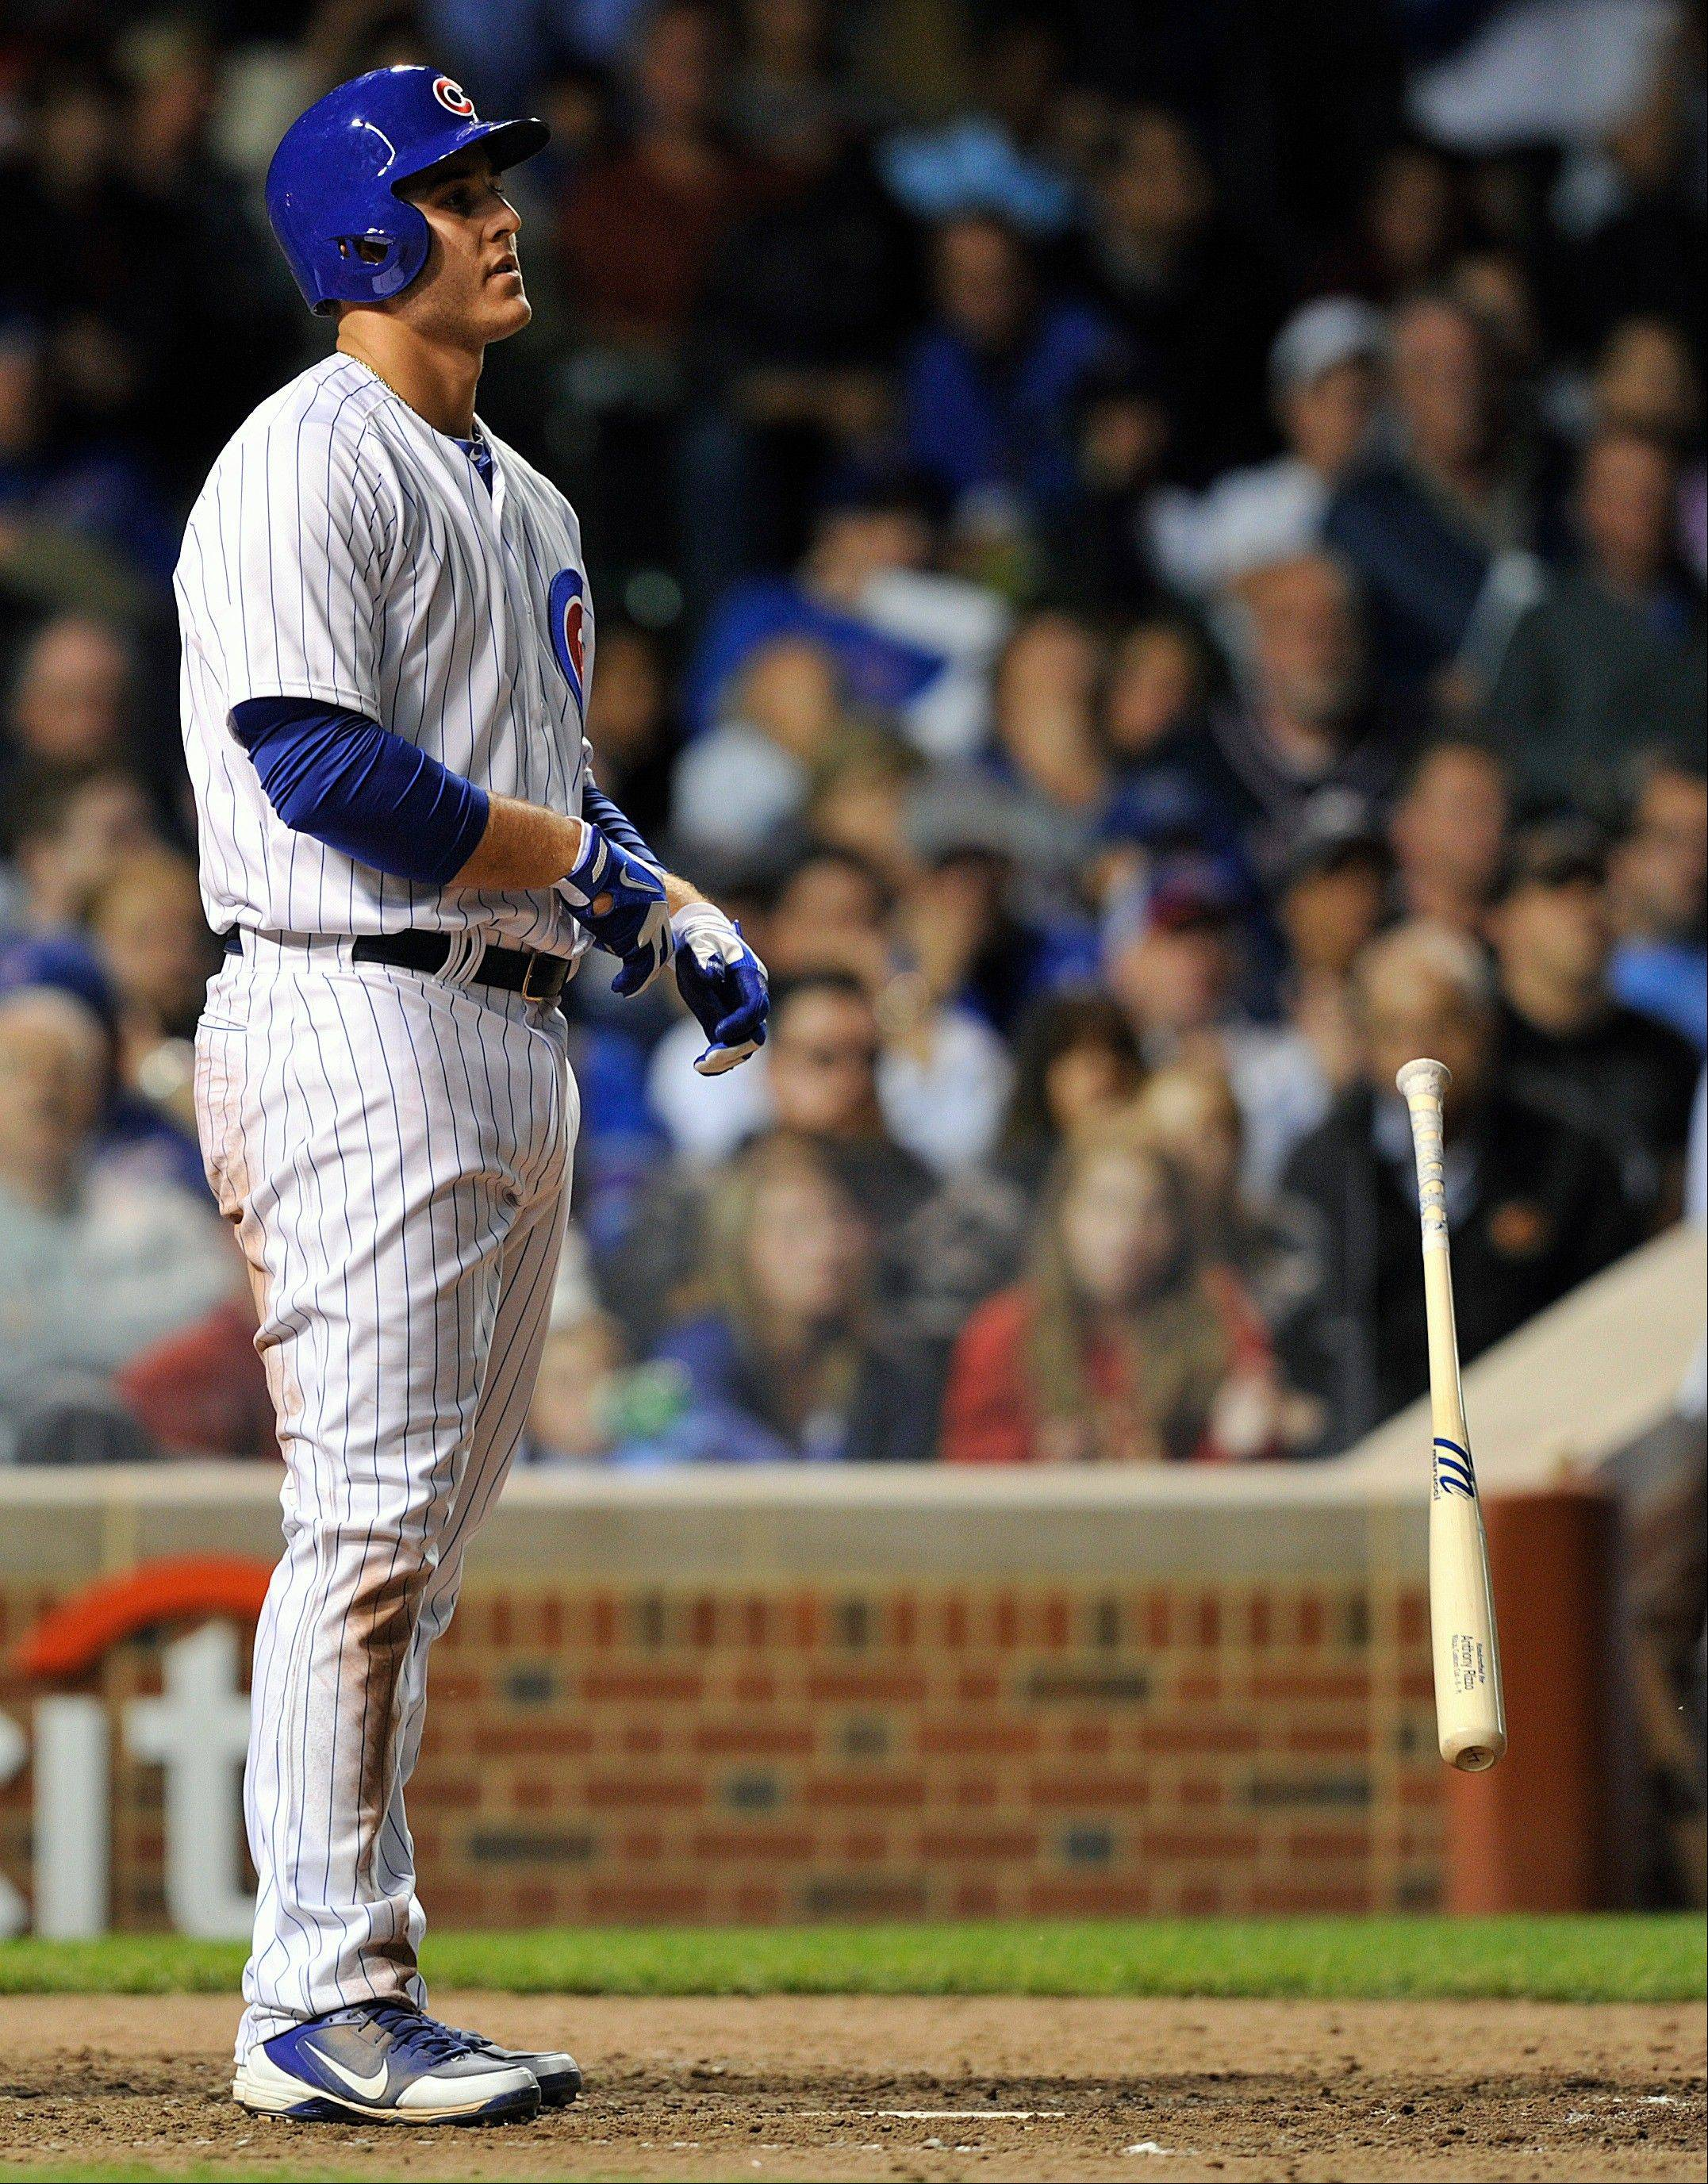 Cubs first baseman Anthony Rizzo has struggled at the plate since the all-star break with a .204 batting average. He has 5 homers, 11 RBI, 15 walks and 24 strikeouts in that time.